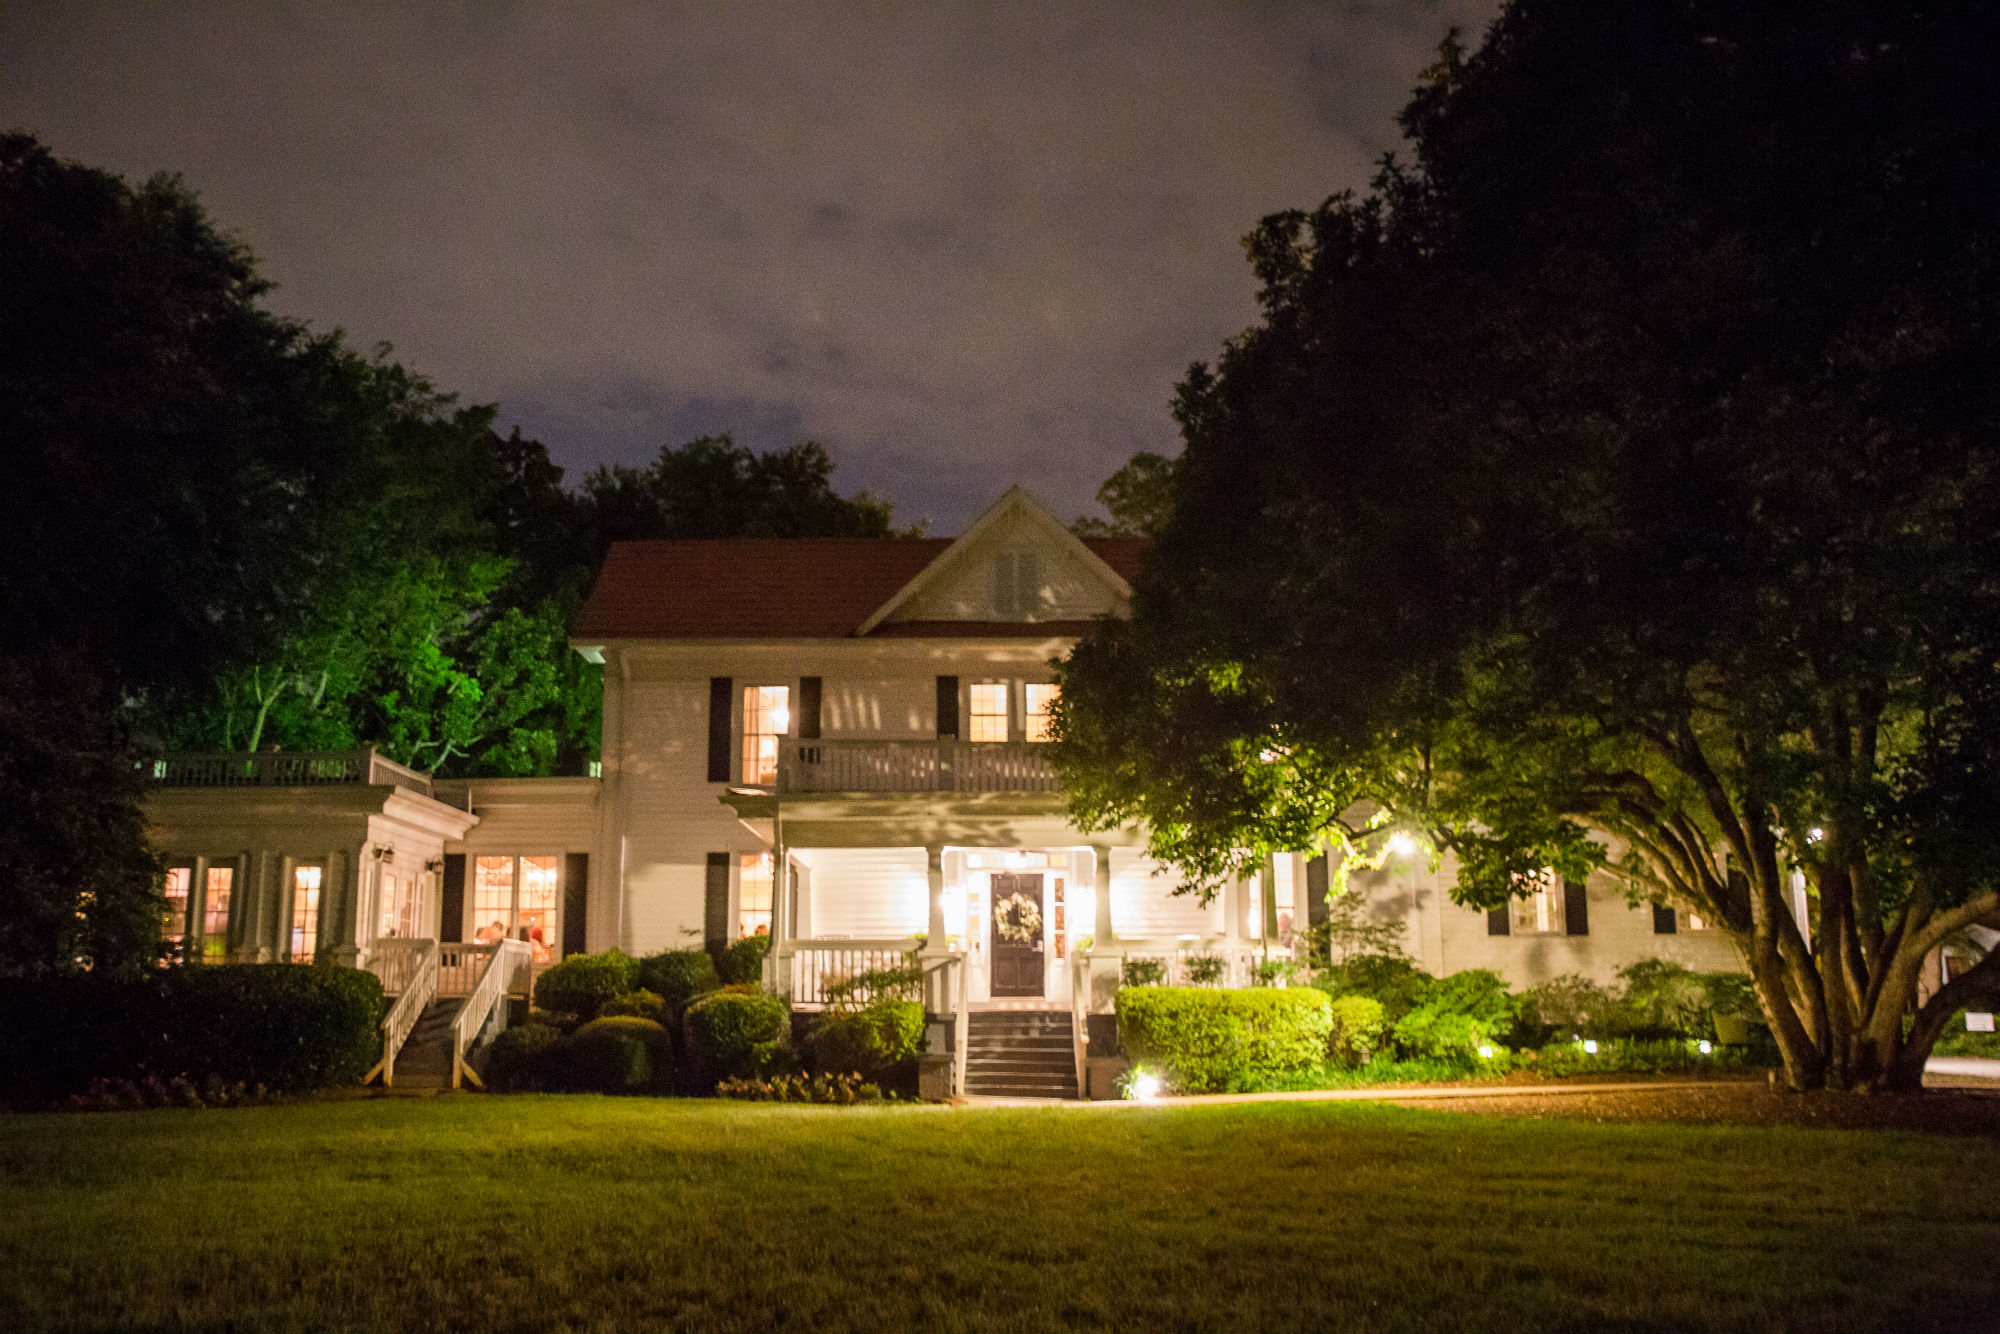 Payne-Corley House: Image Courtesy of  Matt Yung Photography